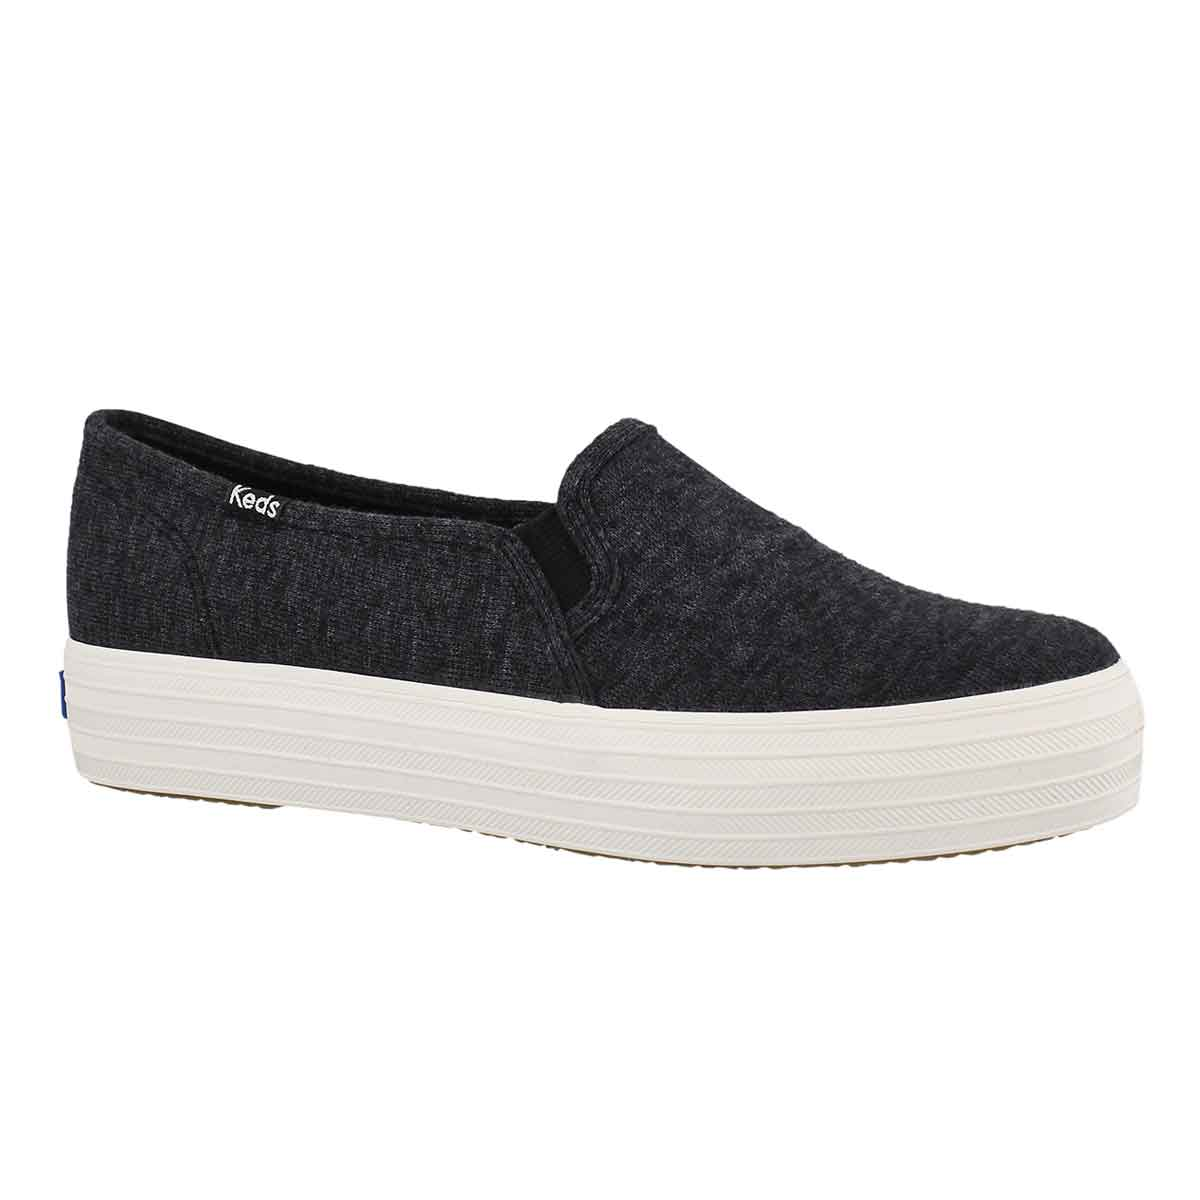 Women's TRIPLE DECKER JERSEY blk slip on sneakers